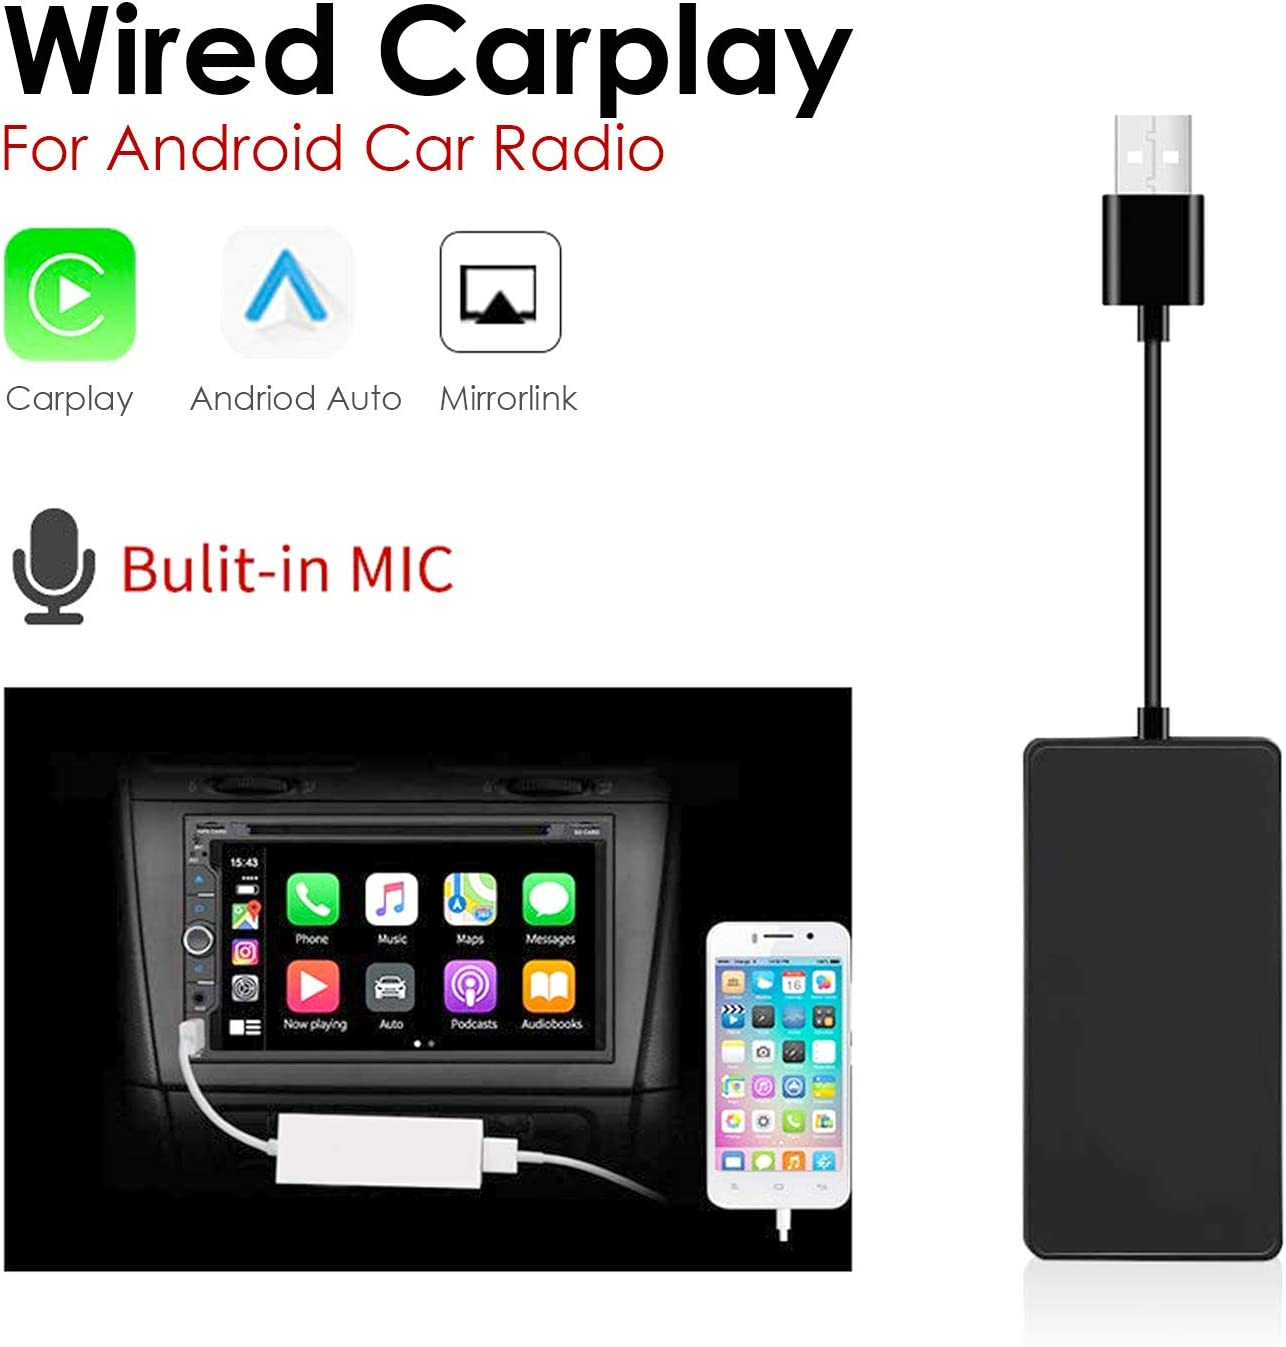 White Mirror Screen//SIRI//Voice Control//Maps//Online Upgrade Dongle heypower Wired USB CarPlay Dongle Android Auto for Car Radio with Android Head Unit